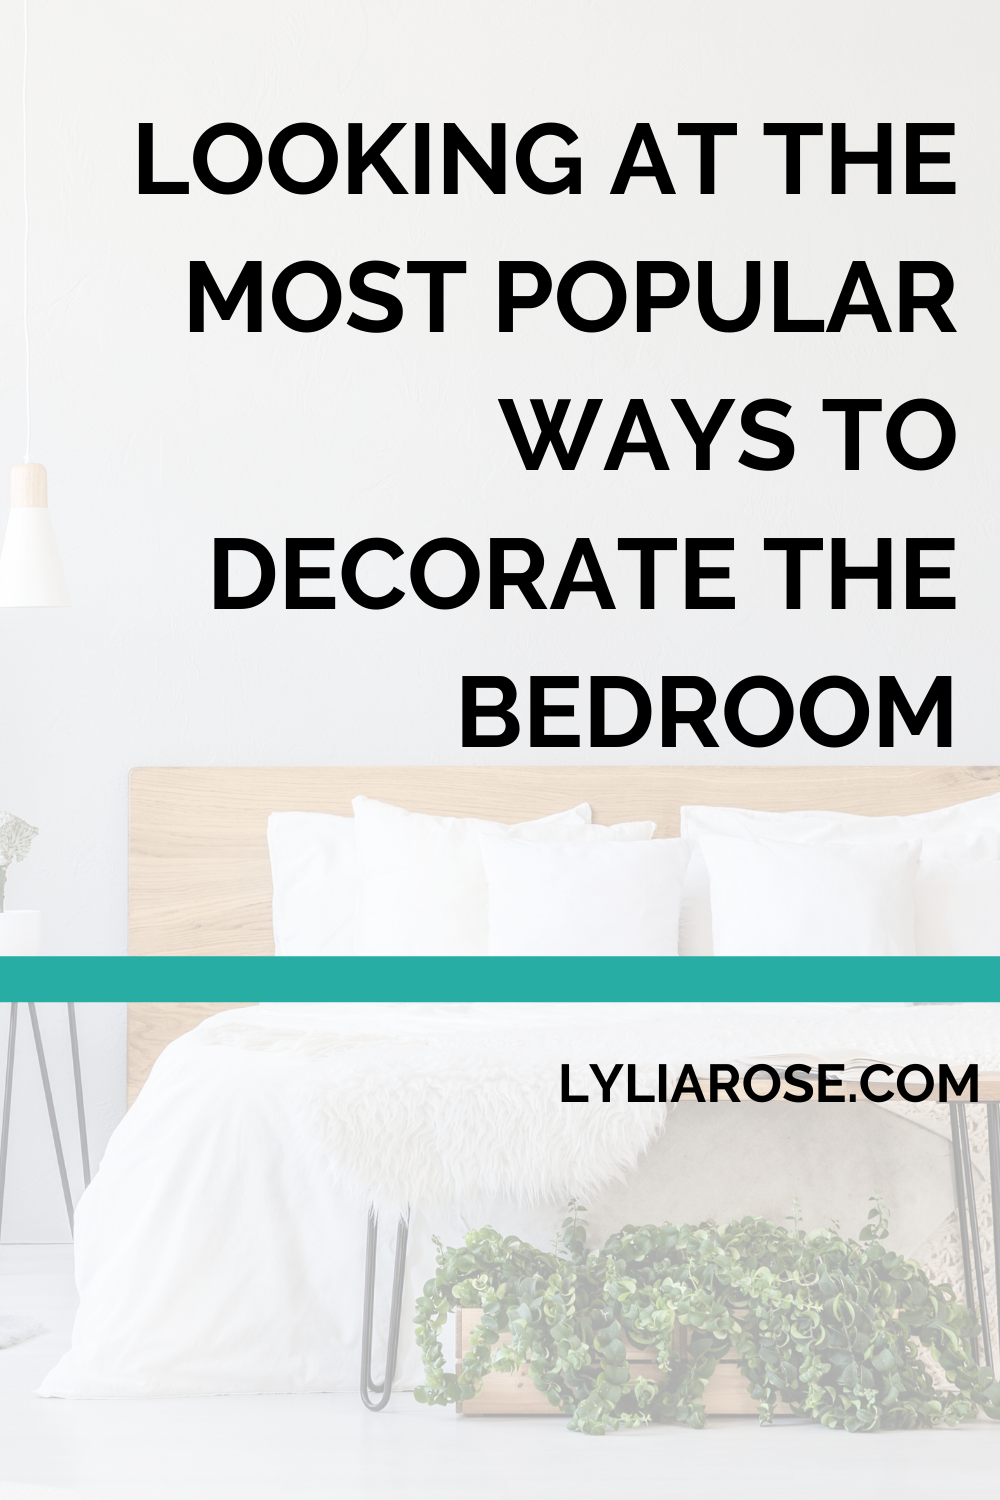 Looking at the most popular ways to decorate the bedroom (2)